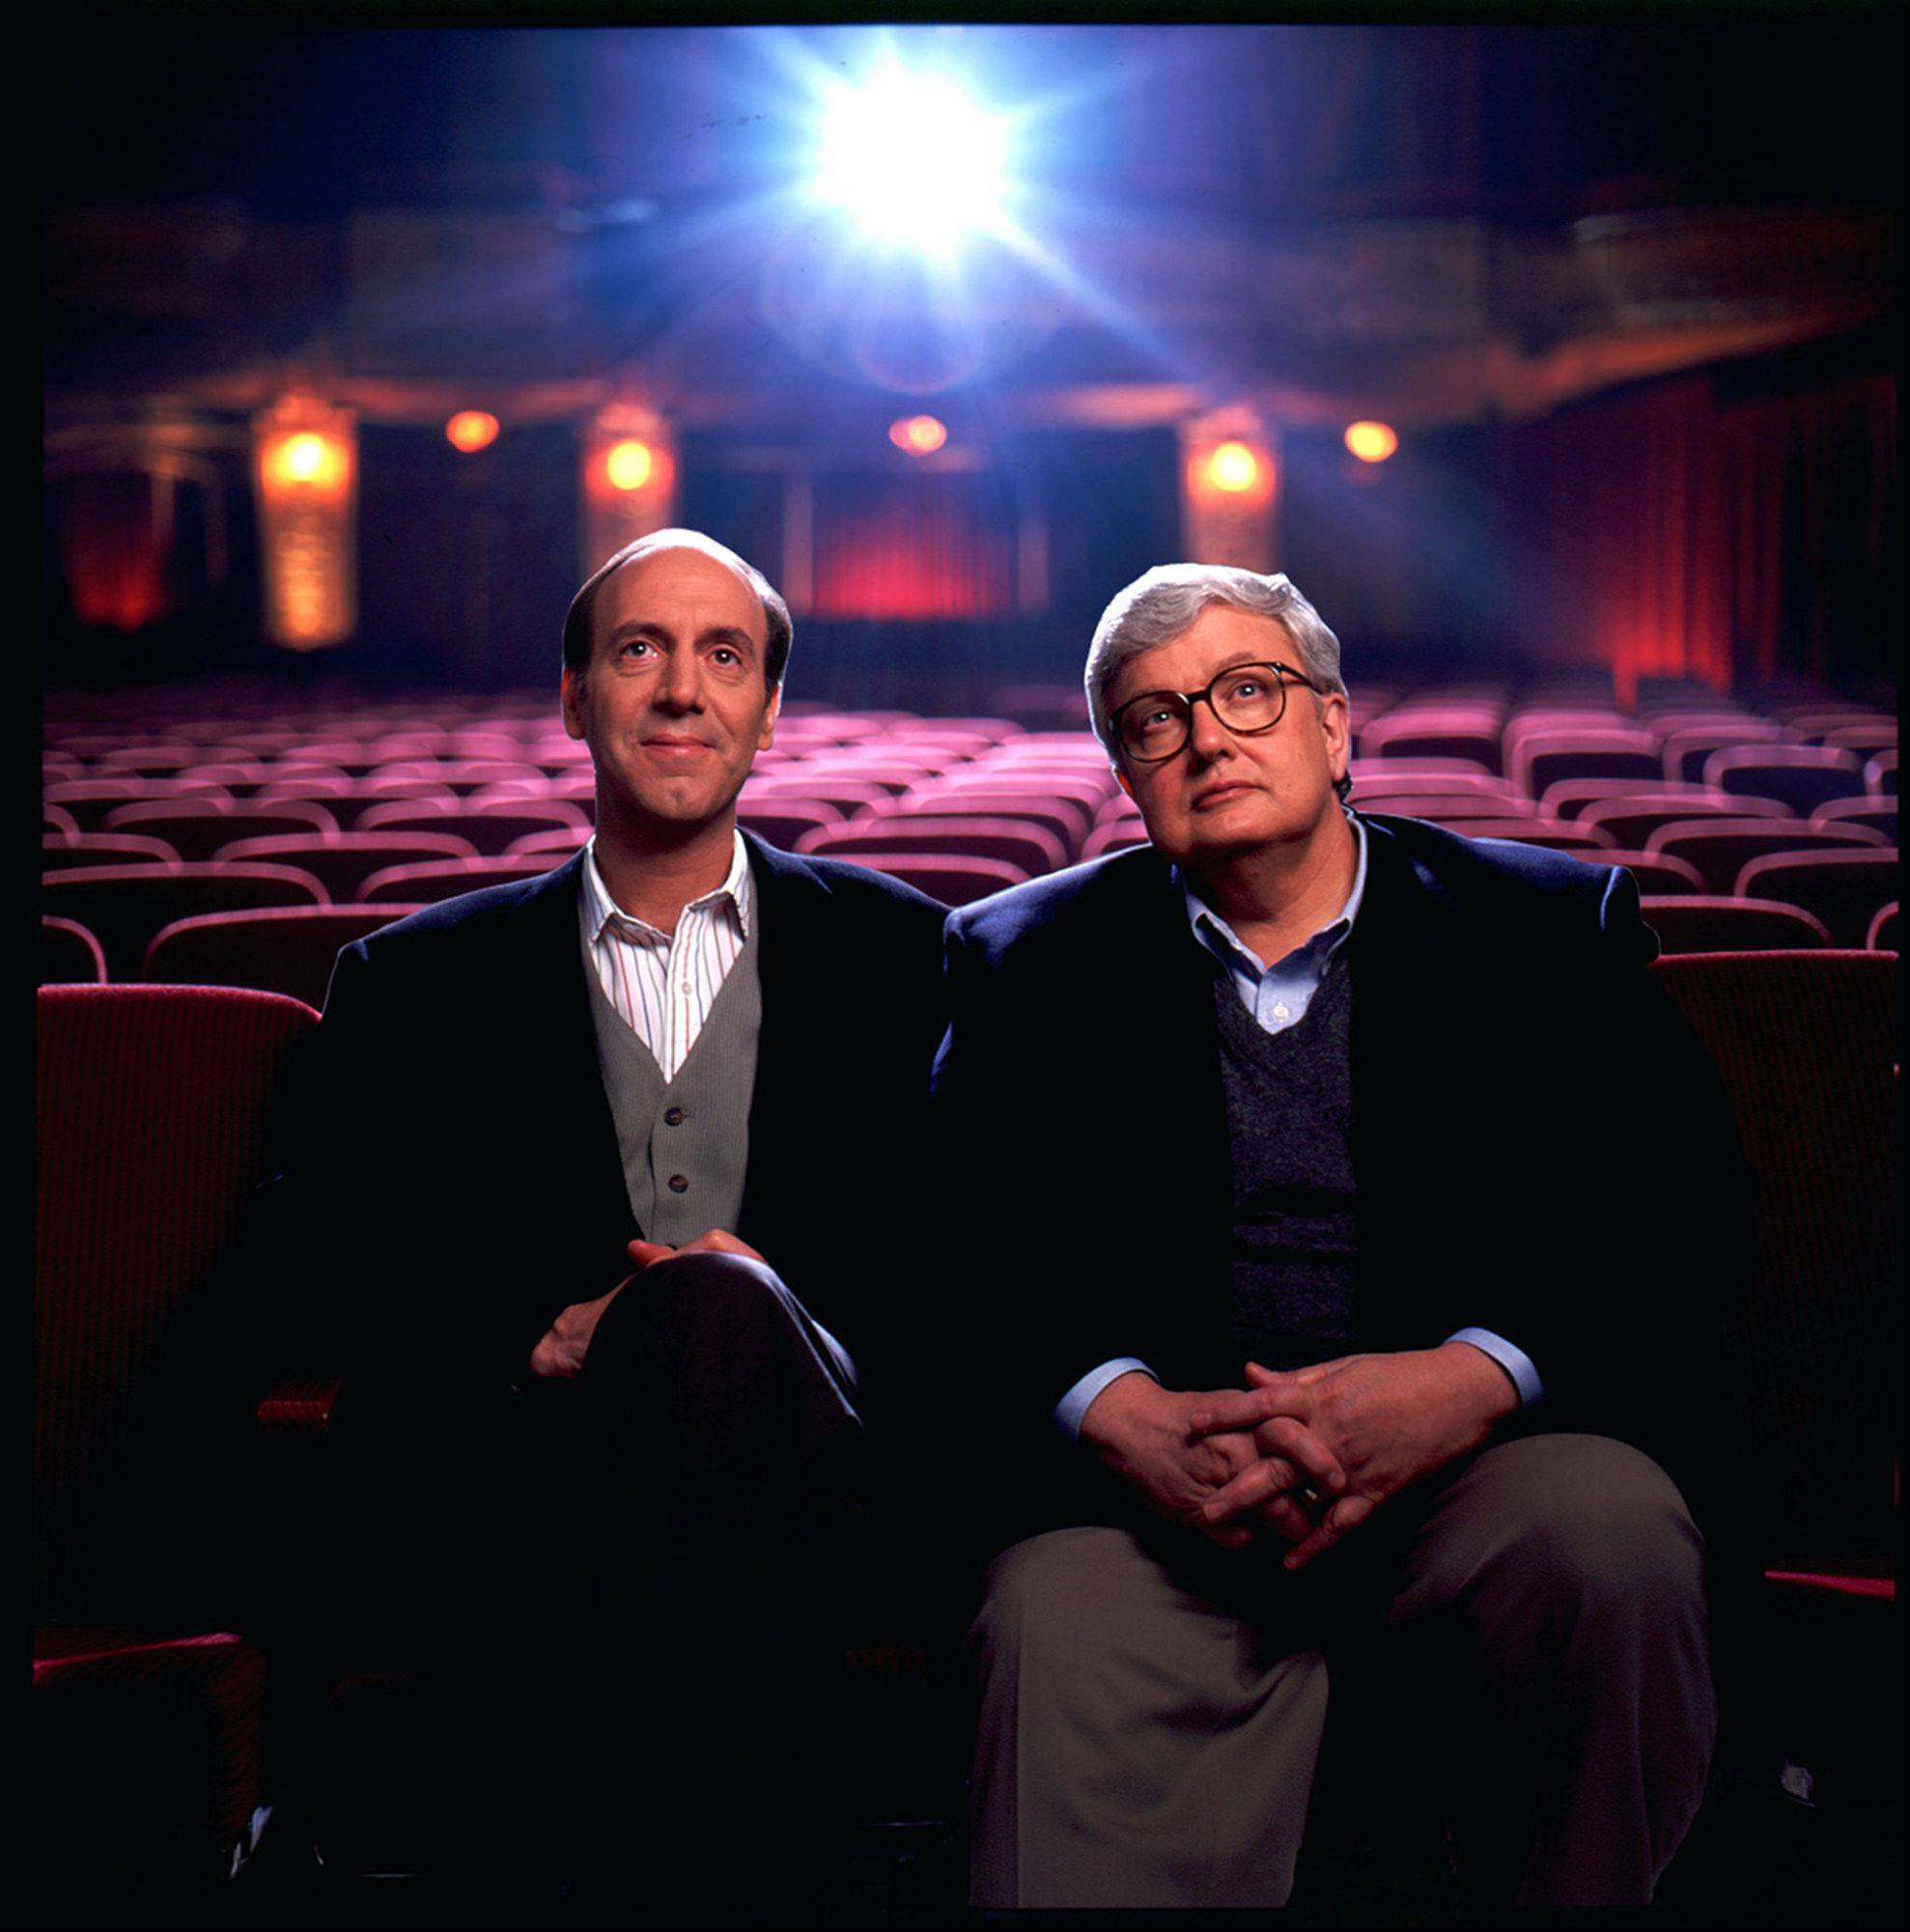 In this undated photo released by Disney-ABC Domestic Television, movie critics Roger Ebert, right, and Gene Siskel are shown. Starting Thursday, Aug. 2, 2007, a new web site touted as the largest collection of video-based movie reviews online will begin. The site will feature clips from the show that made the thumb famous and include 5,000 movie reviews, spanning more than 20 years of the show hosted by newspaper film critics Roger Ebert and the late Gene Siskel and columnist Richard Roeper.